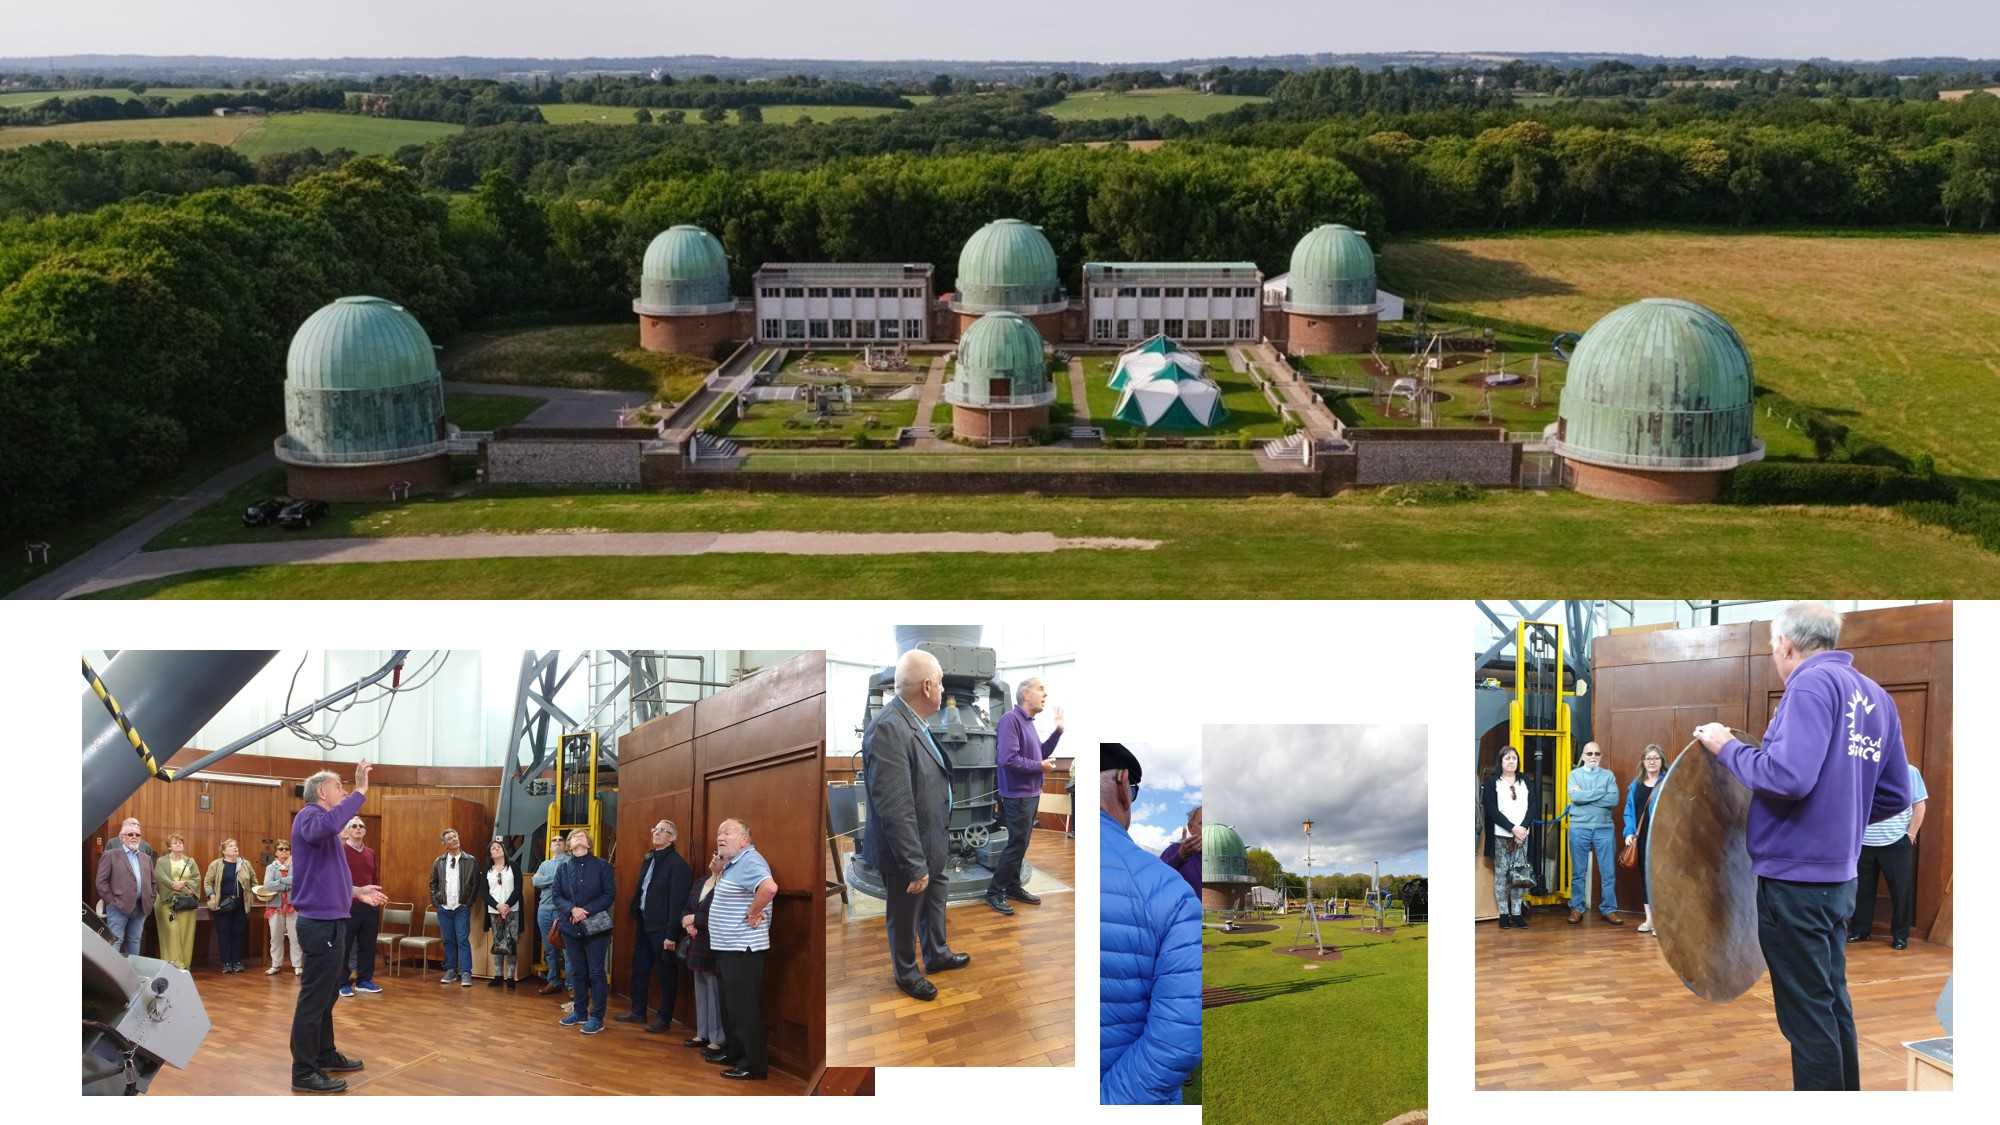 A view of the Observatory Science Centre and the tour group